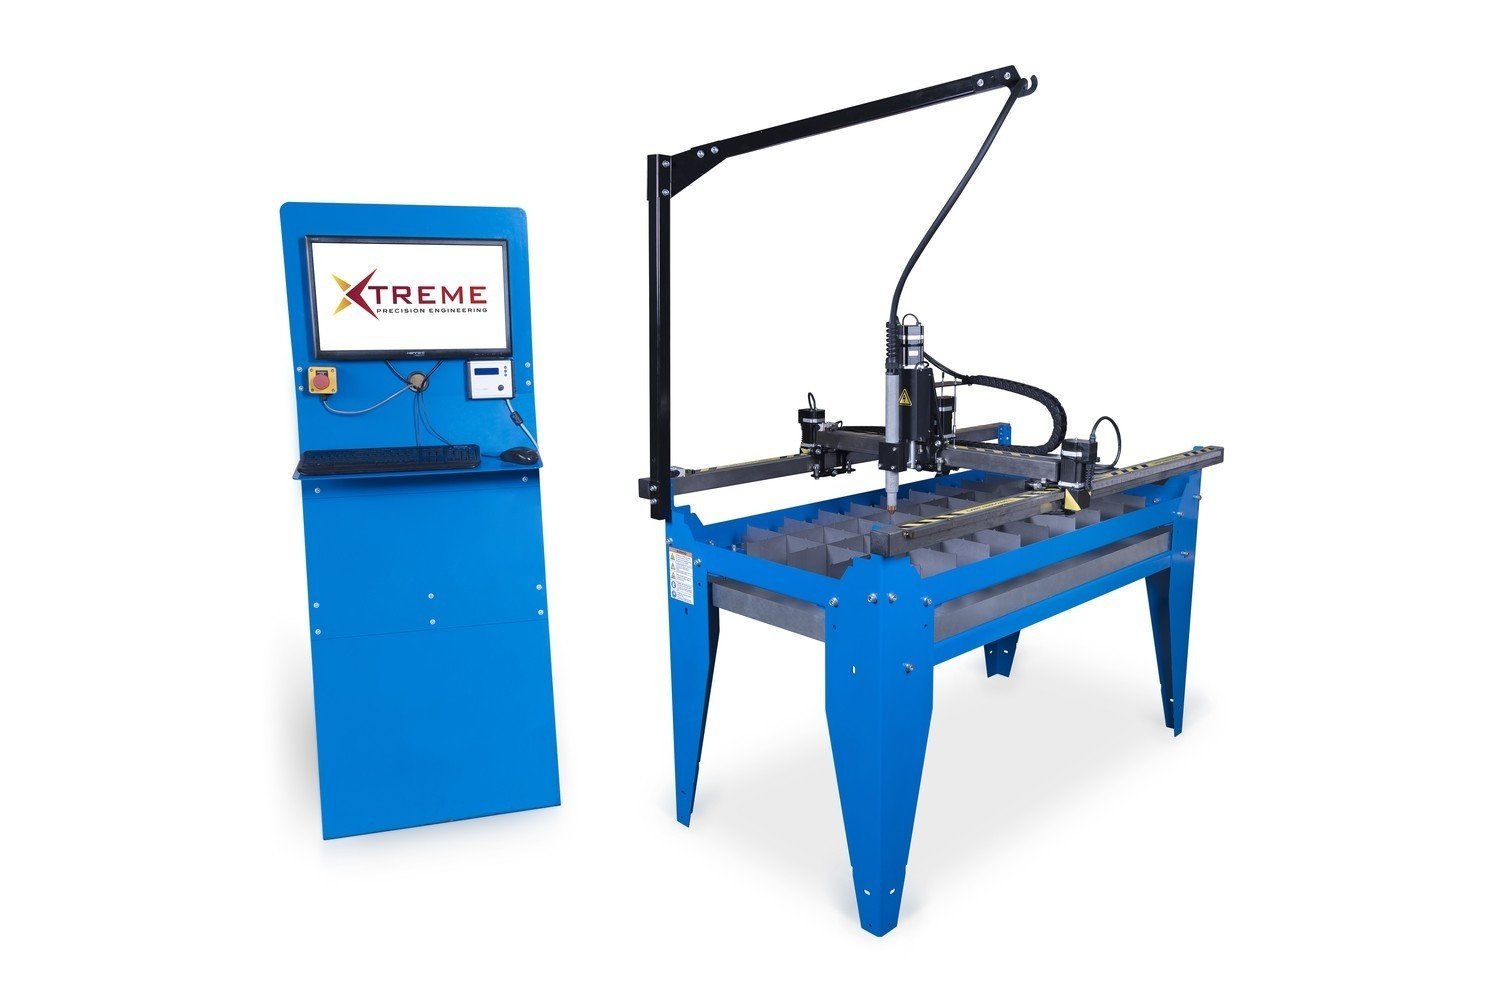 4x2 CNC Plasma Cutting Table (taking orders please contact for lead times)